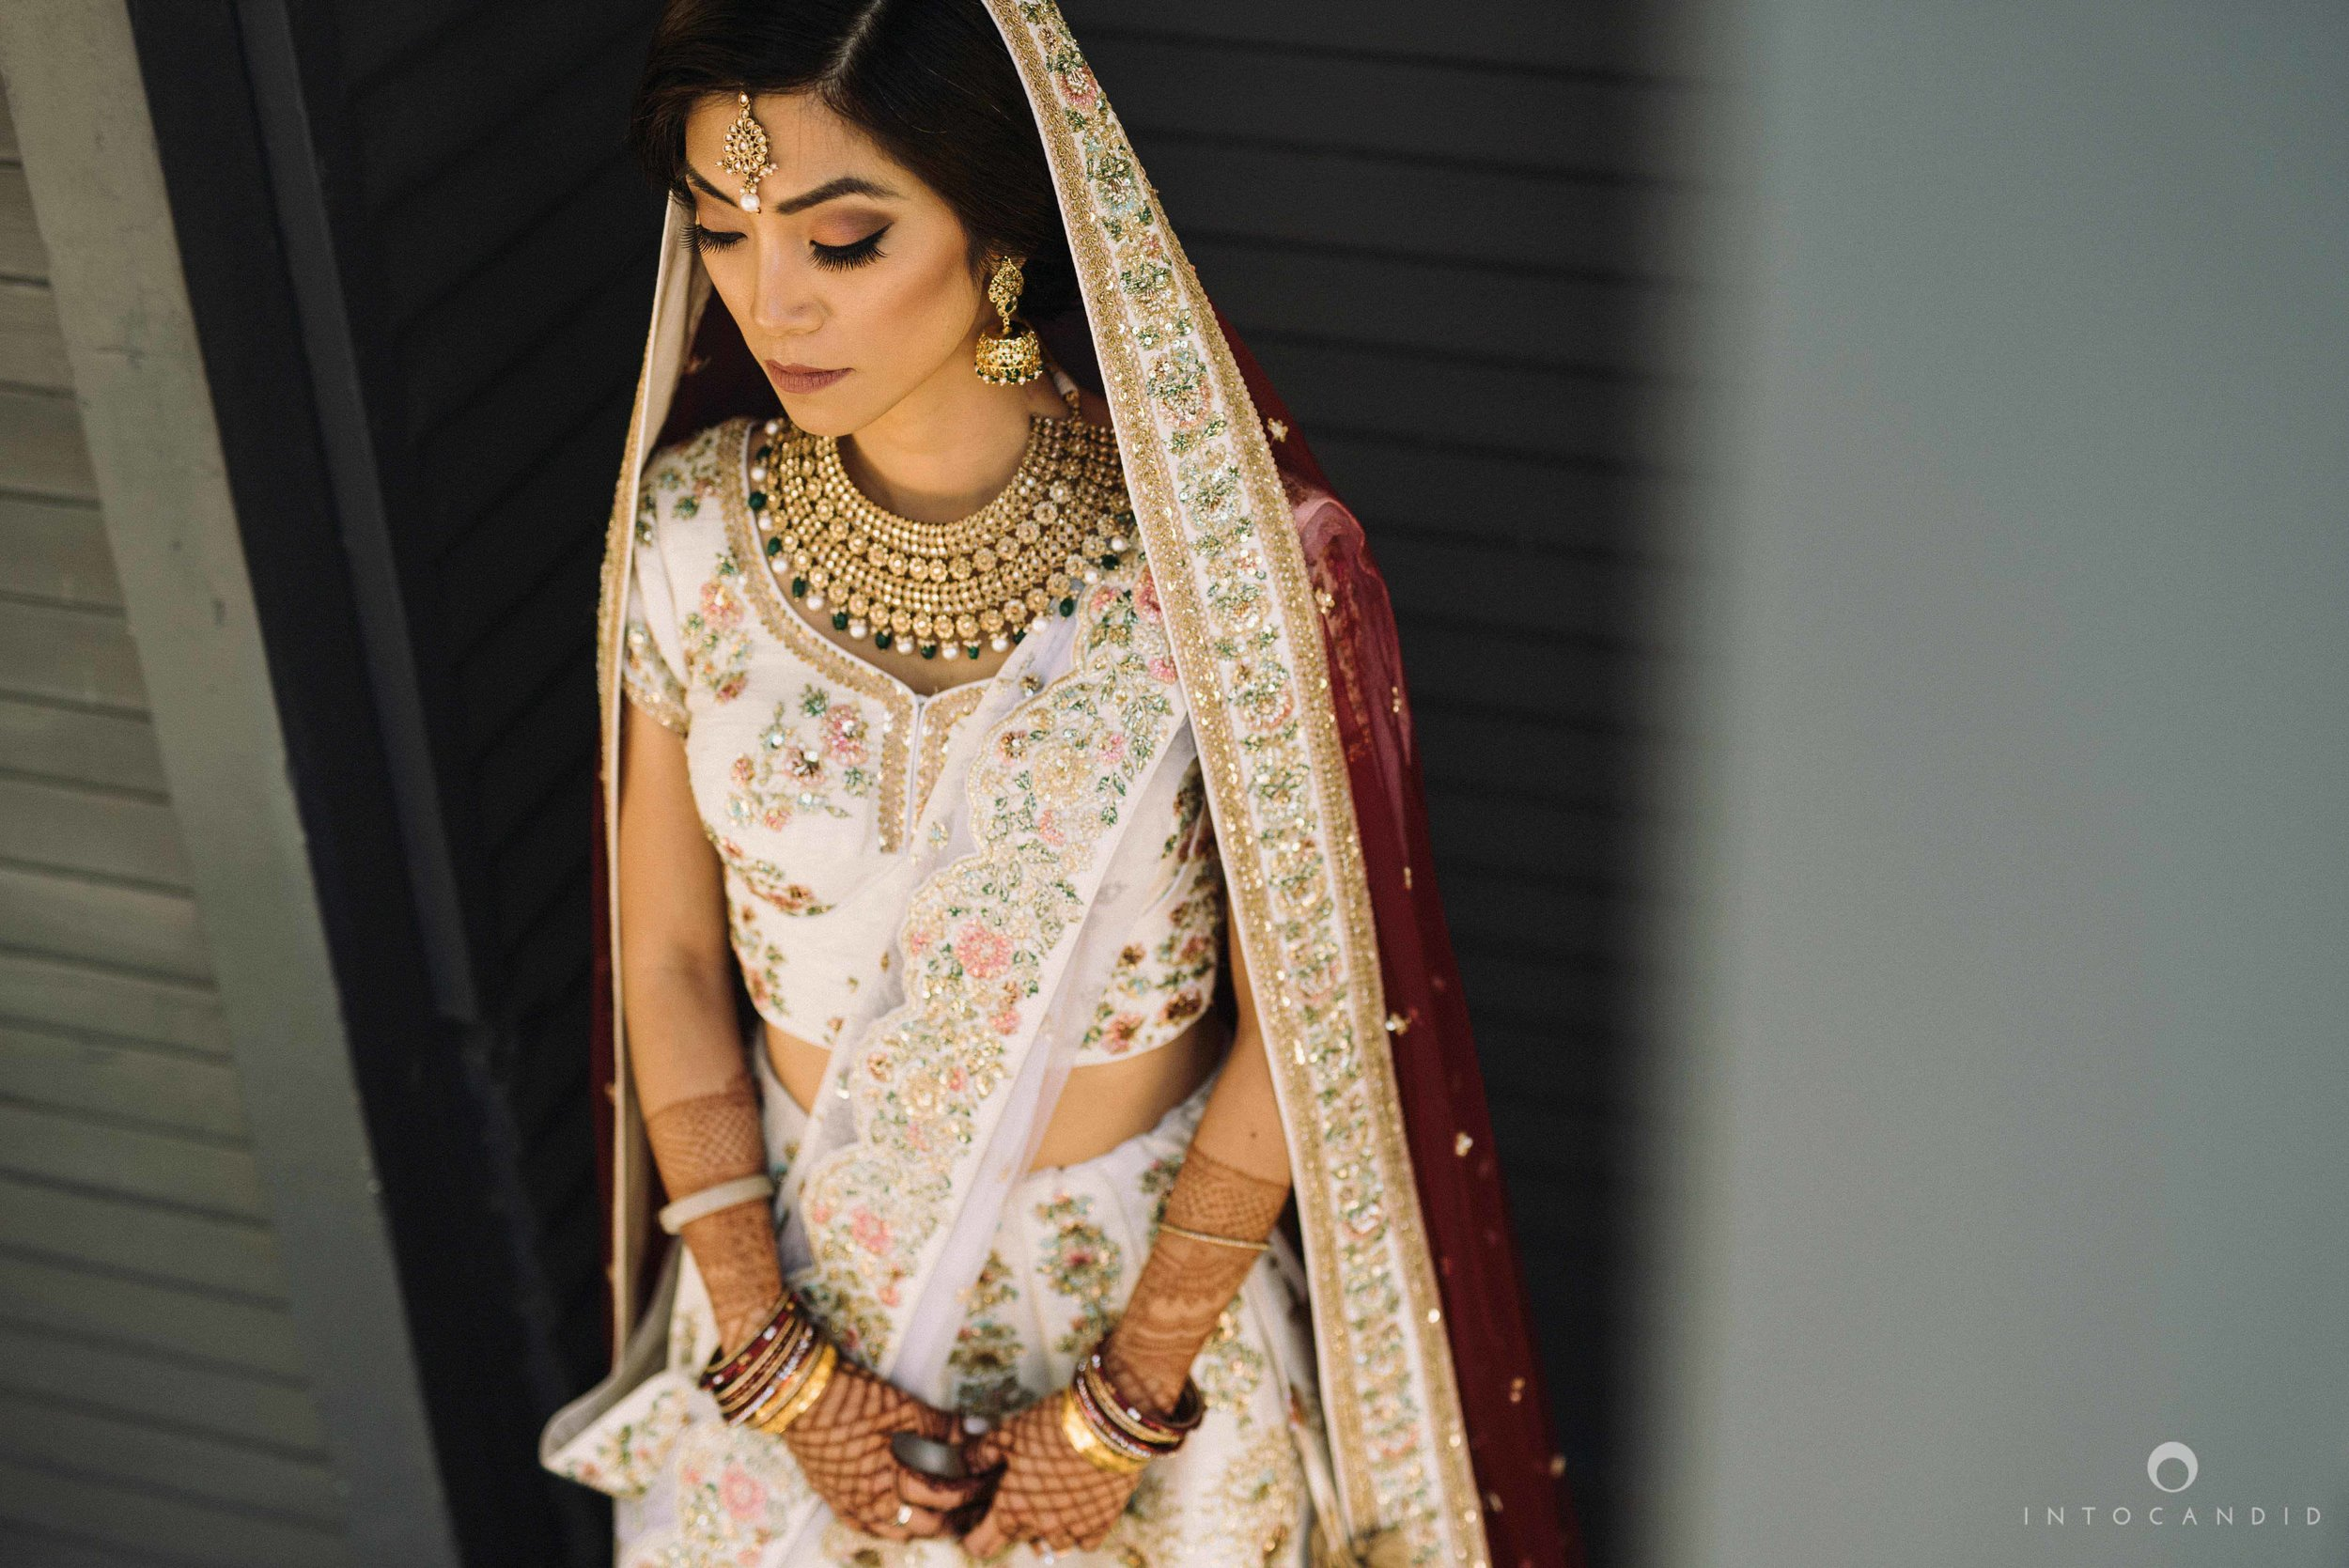 LosAngeles_Indian_Wedding_Photographer_AS_067.jpg